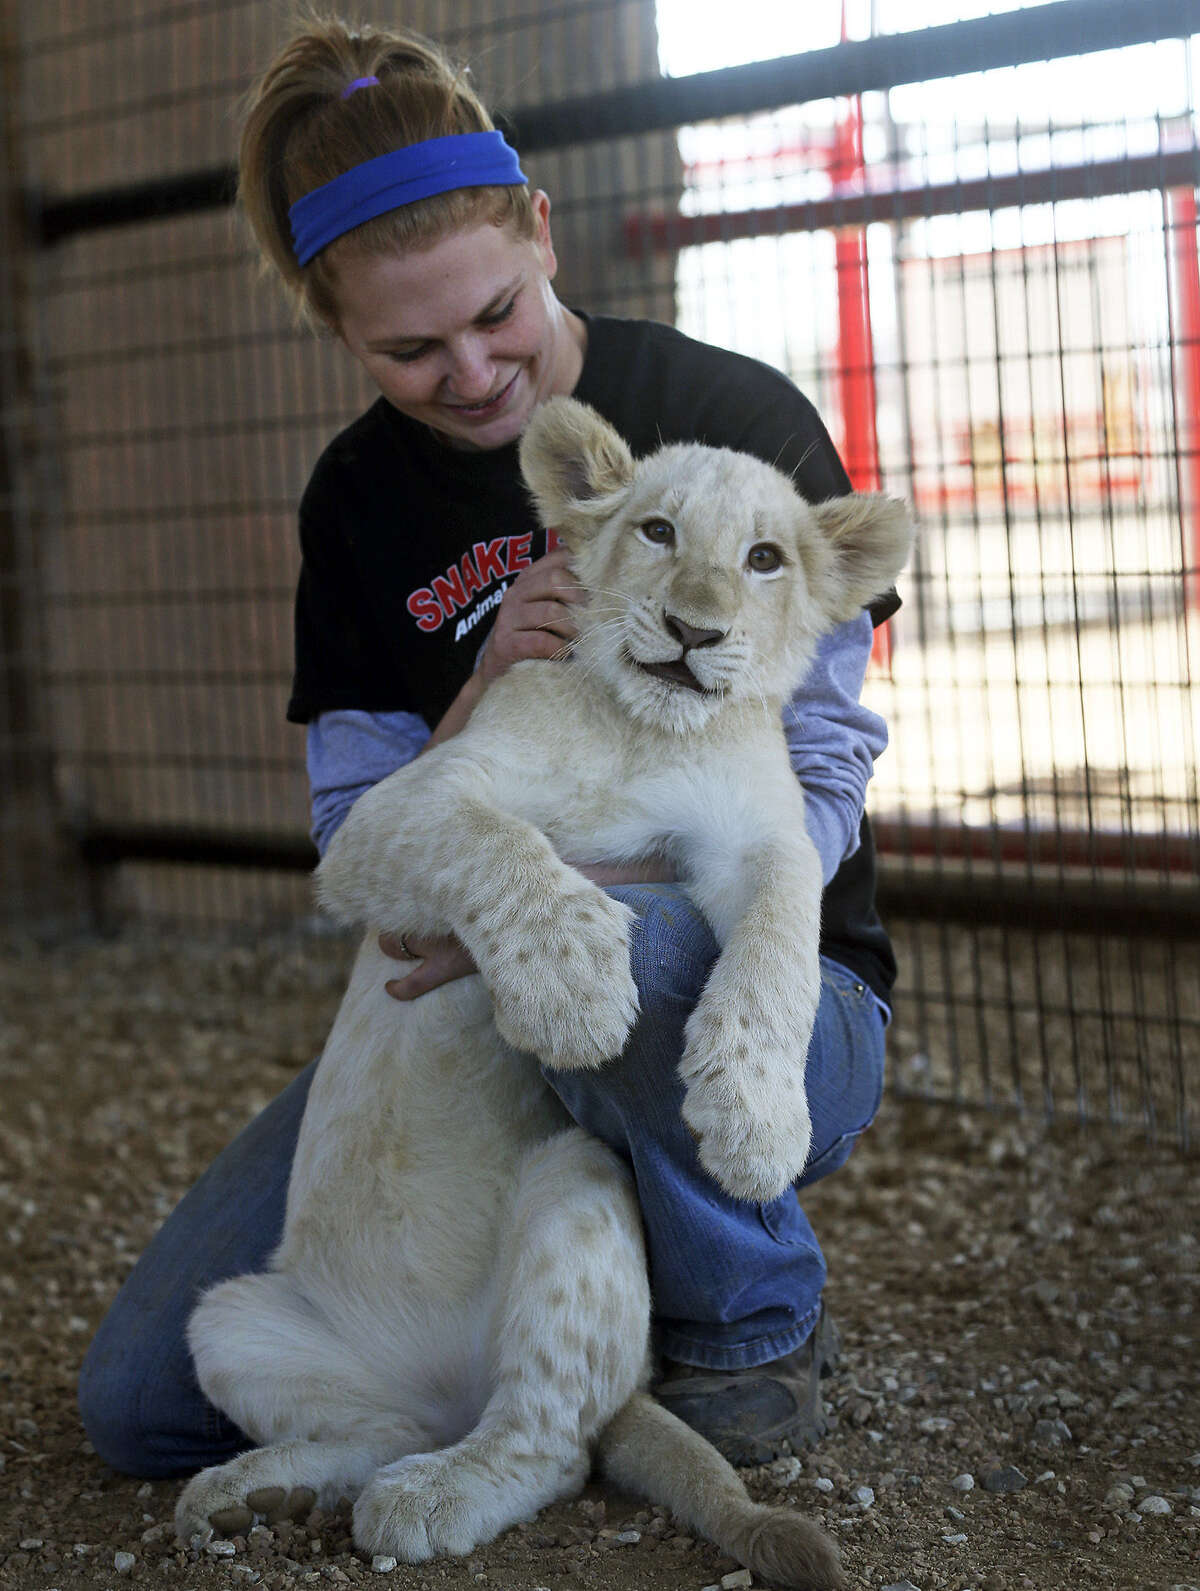 Animal trainer Jessica Darby has fun with a white lion cub at the New Braunfels Animal World and Snake Farm Zoo. There are fewer than 300 white lions in the world.